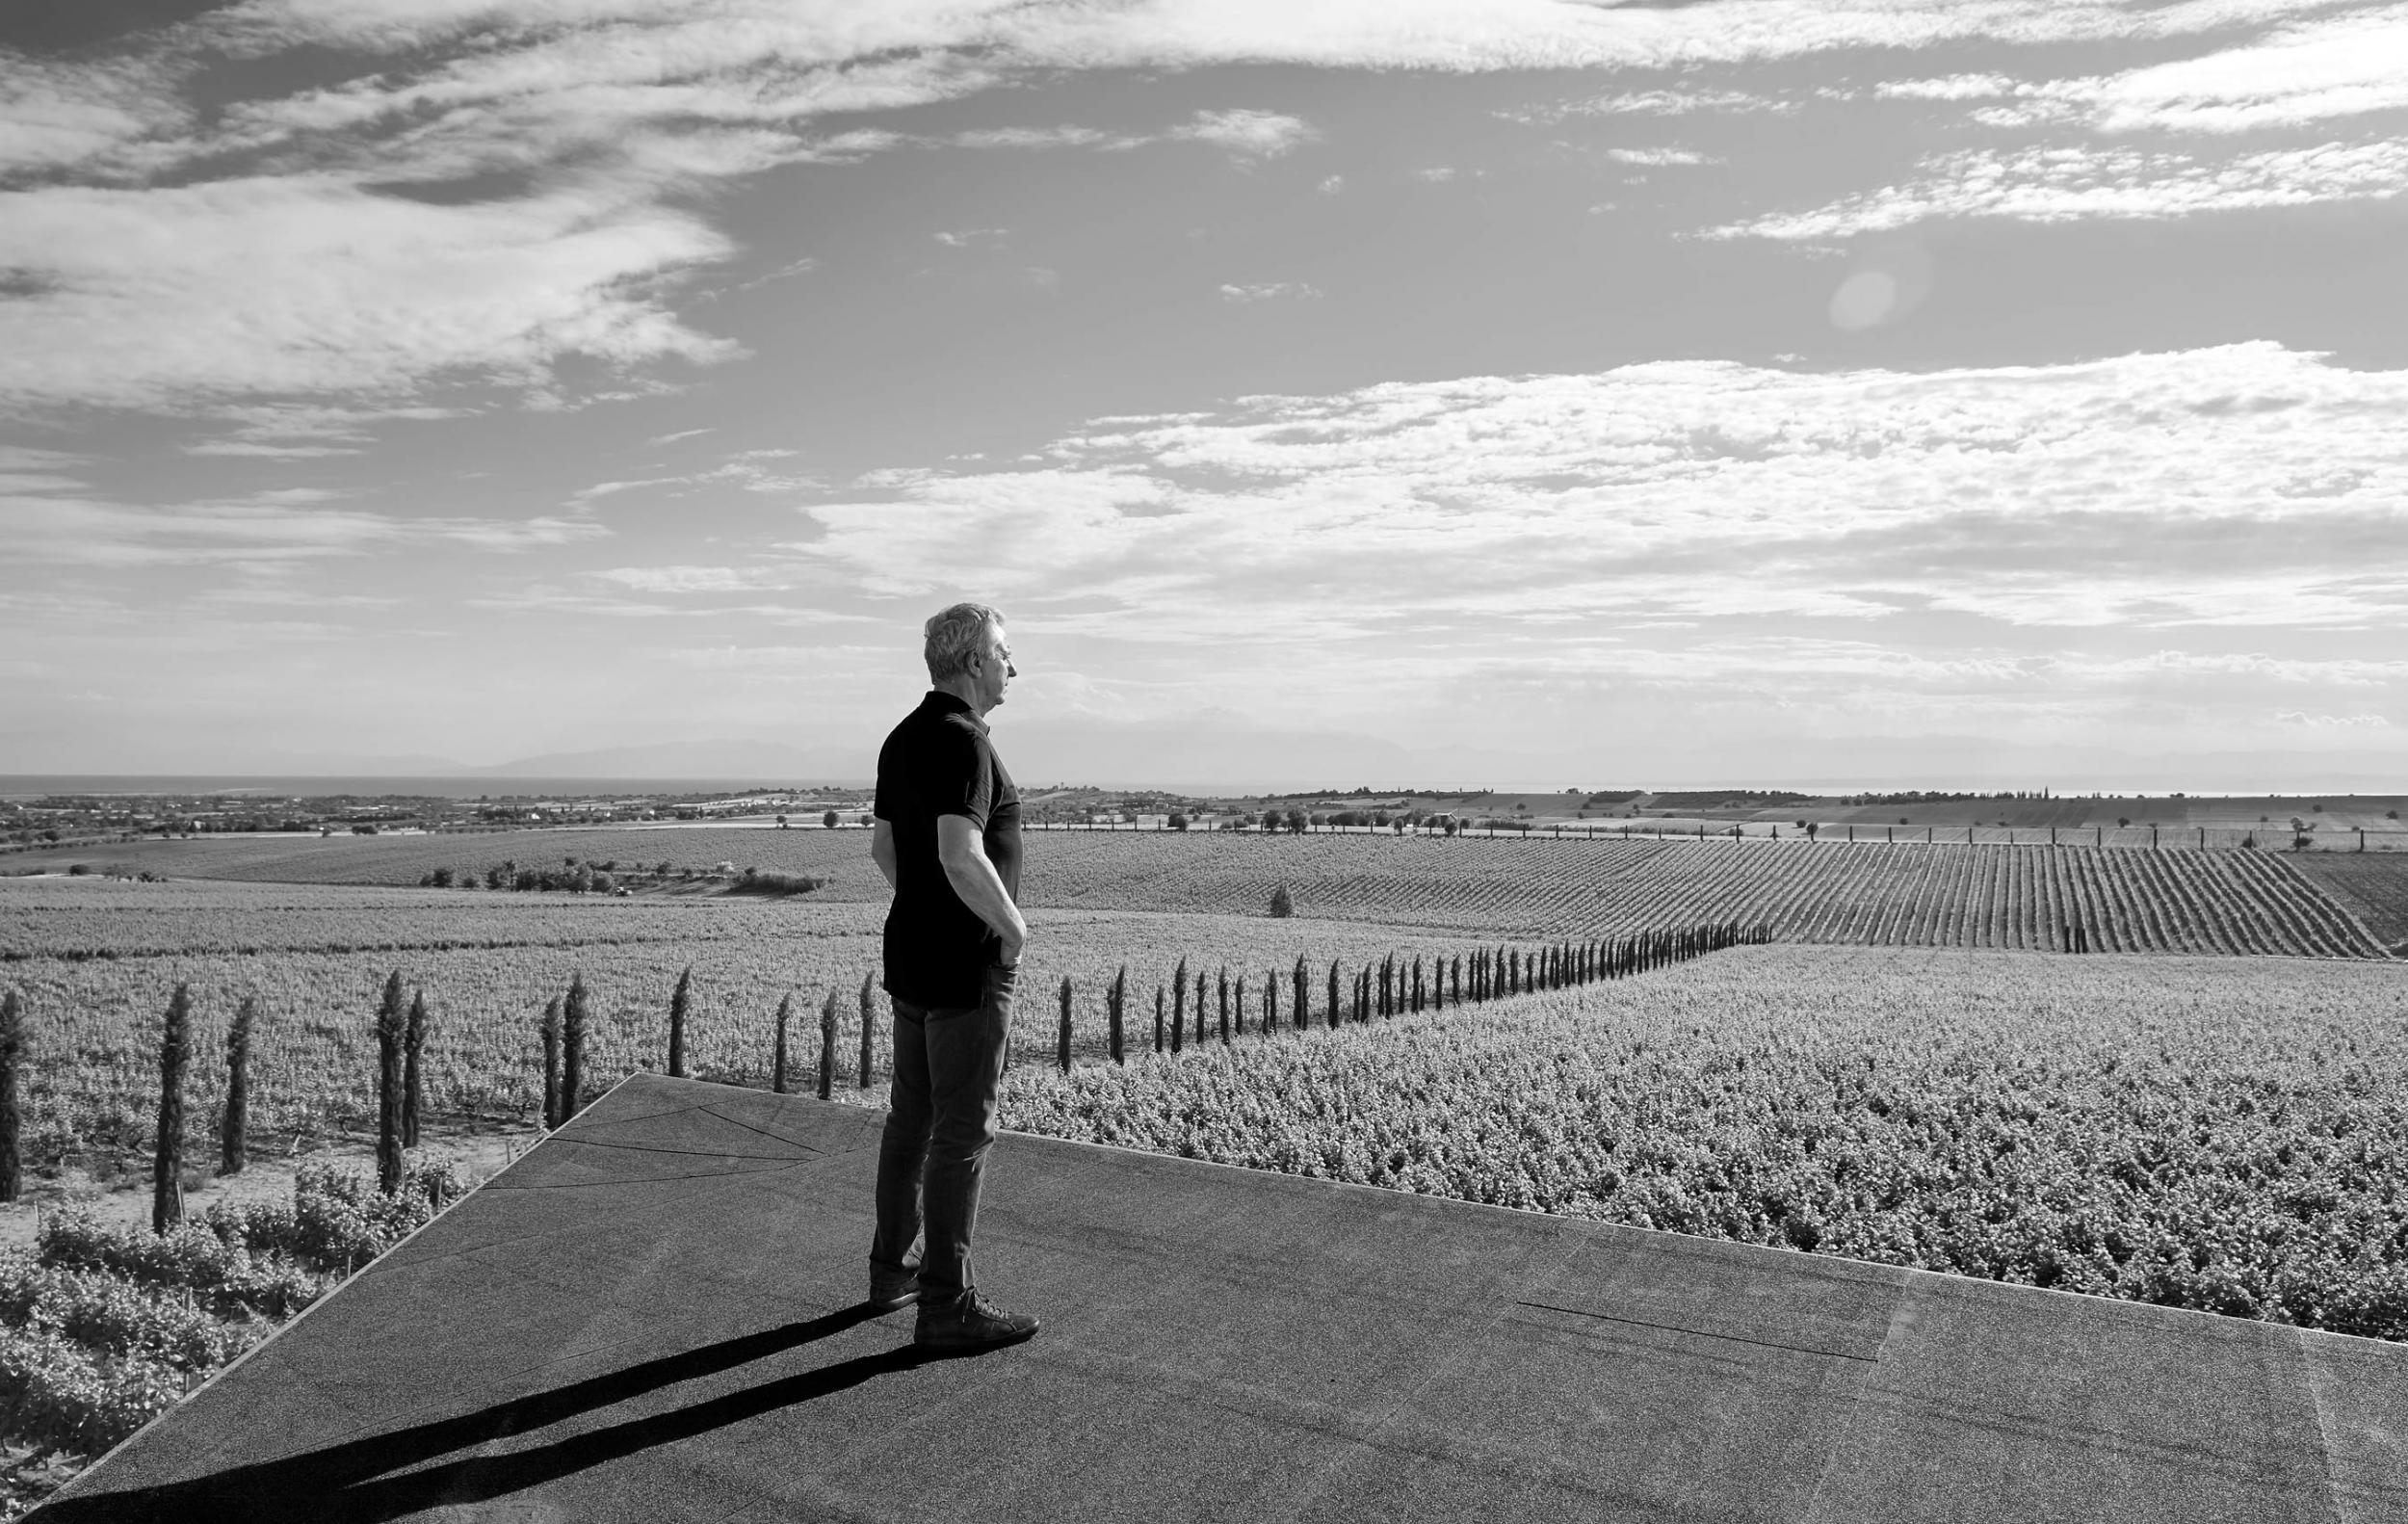 Vaggelis Gerovassiliou on the roof of his winery overlooking the vinyards